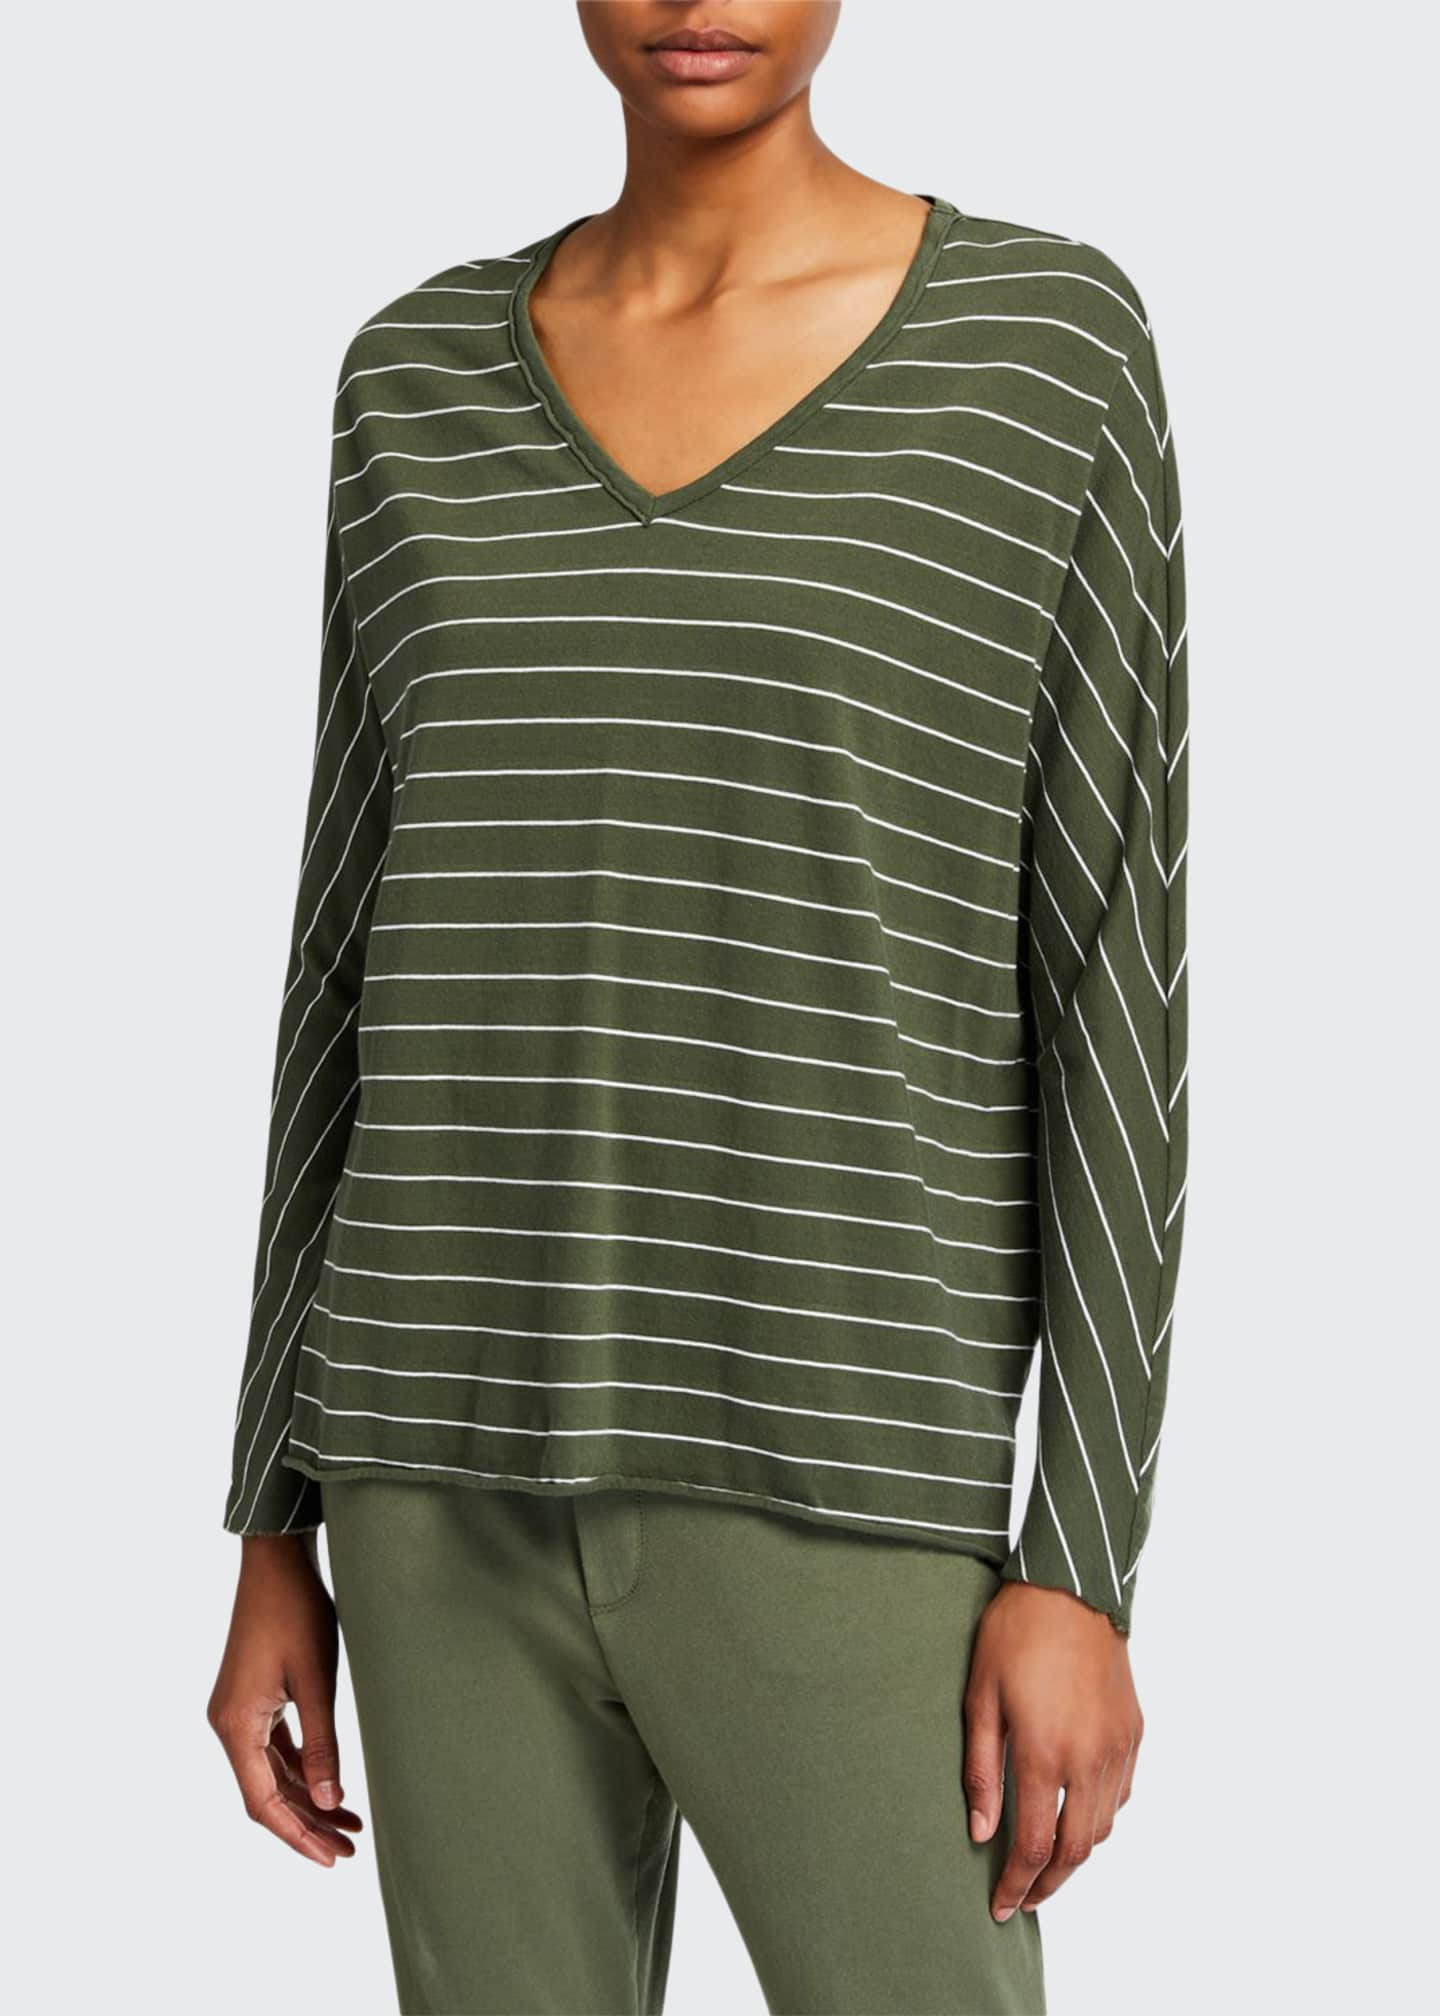 Frank & Eileen Tee Lab Striped Deep V-Neck